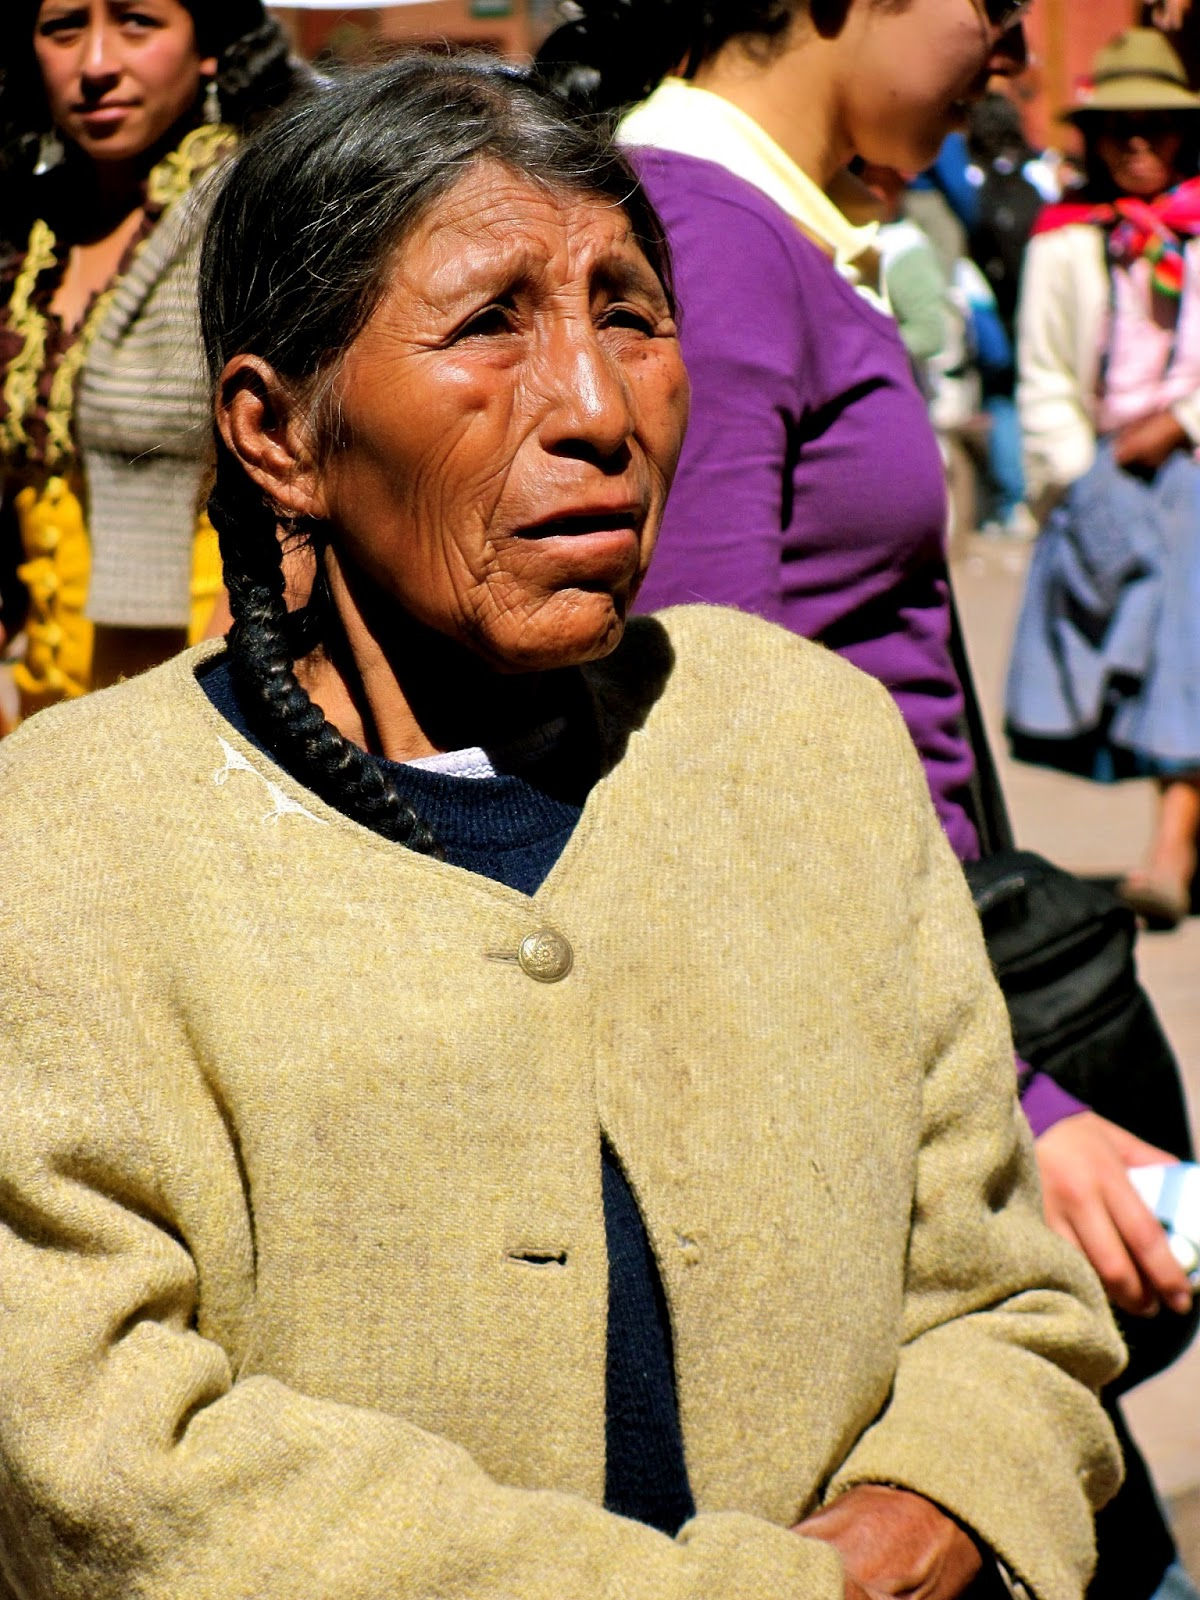 This woman was photographed in Pisac, Peru during the Fiesta de la Virgin de la Carmen. She looks like she has the map of the world etched upon her skin, with the worries of her entire people shadowed within her eyes. I took so many photographs of the warm, gentle, gracious people of Peru on my journey there, and still looking back through photographs, they are some of my favorites ever  taken.